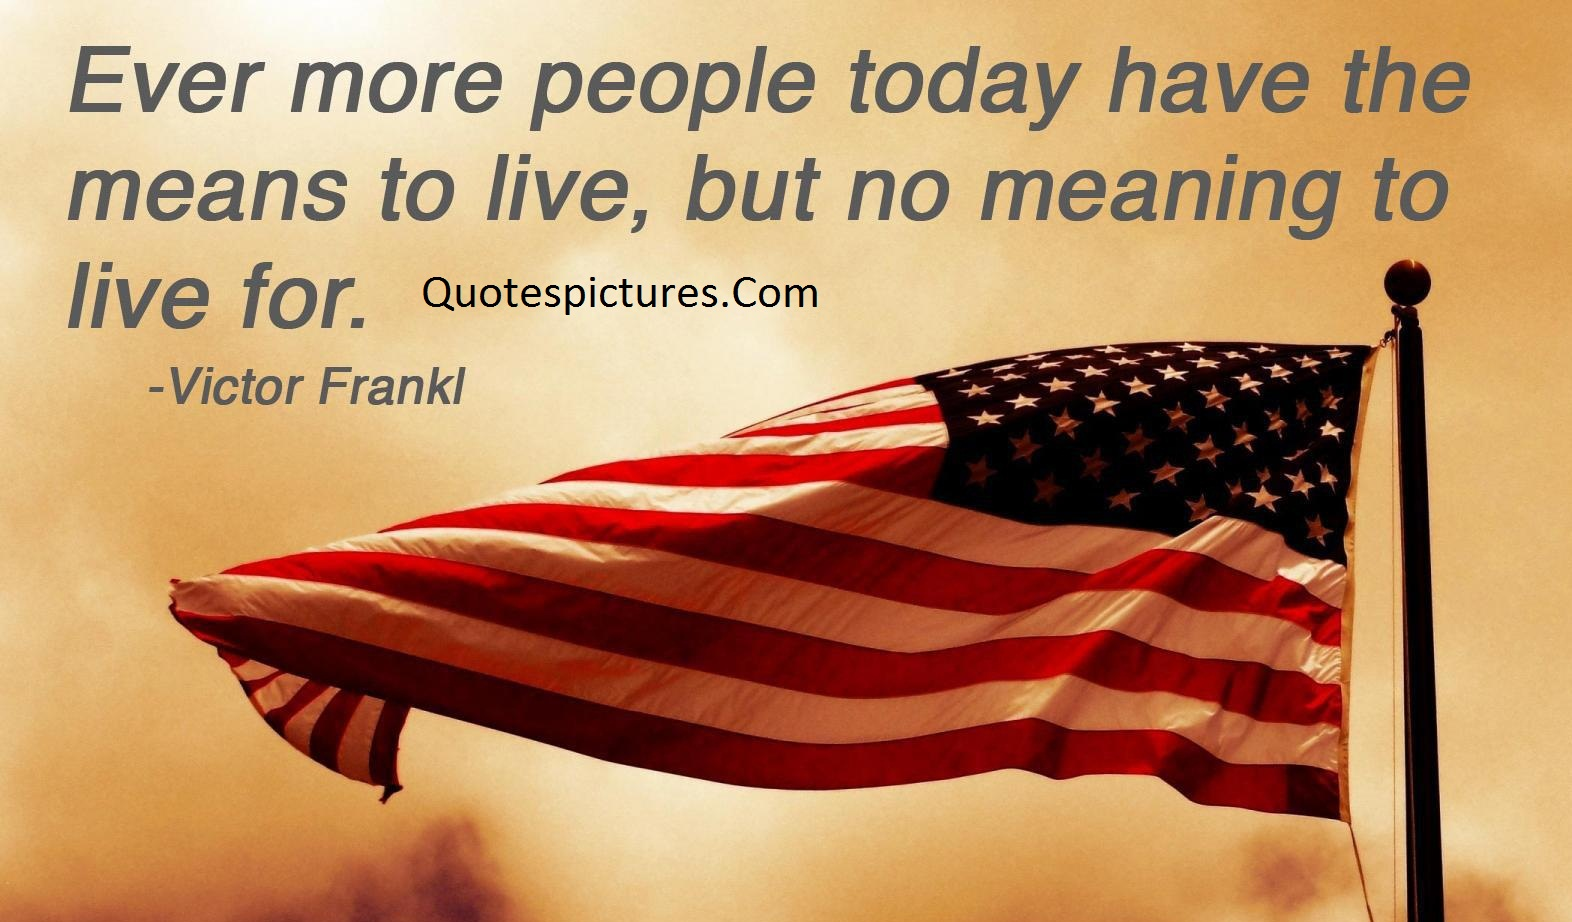 America Quotes - Ever More People Today Have The Means To Live By Victor Frankl